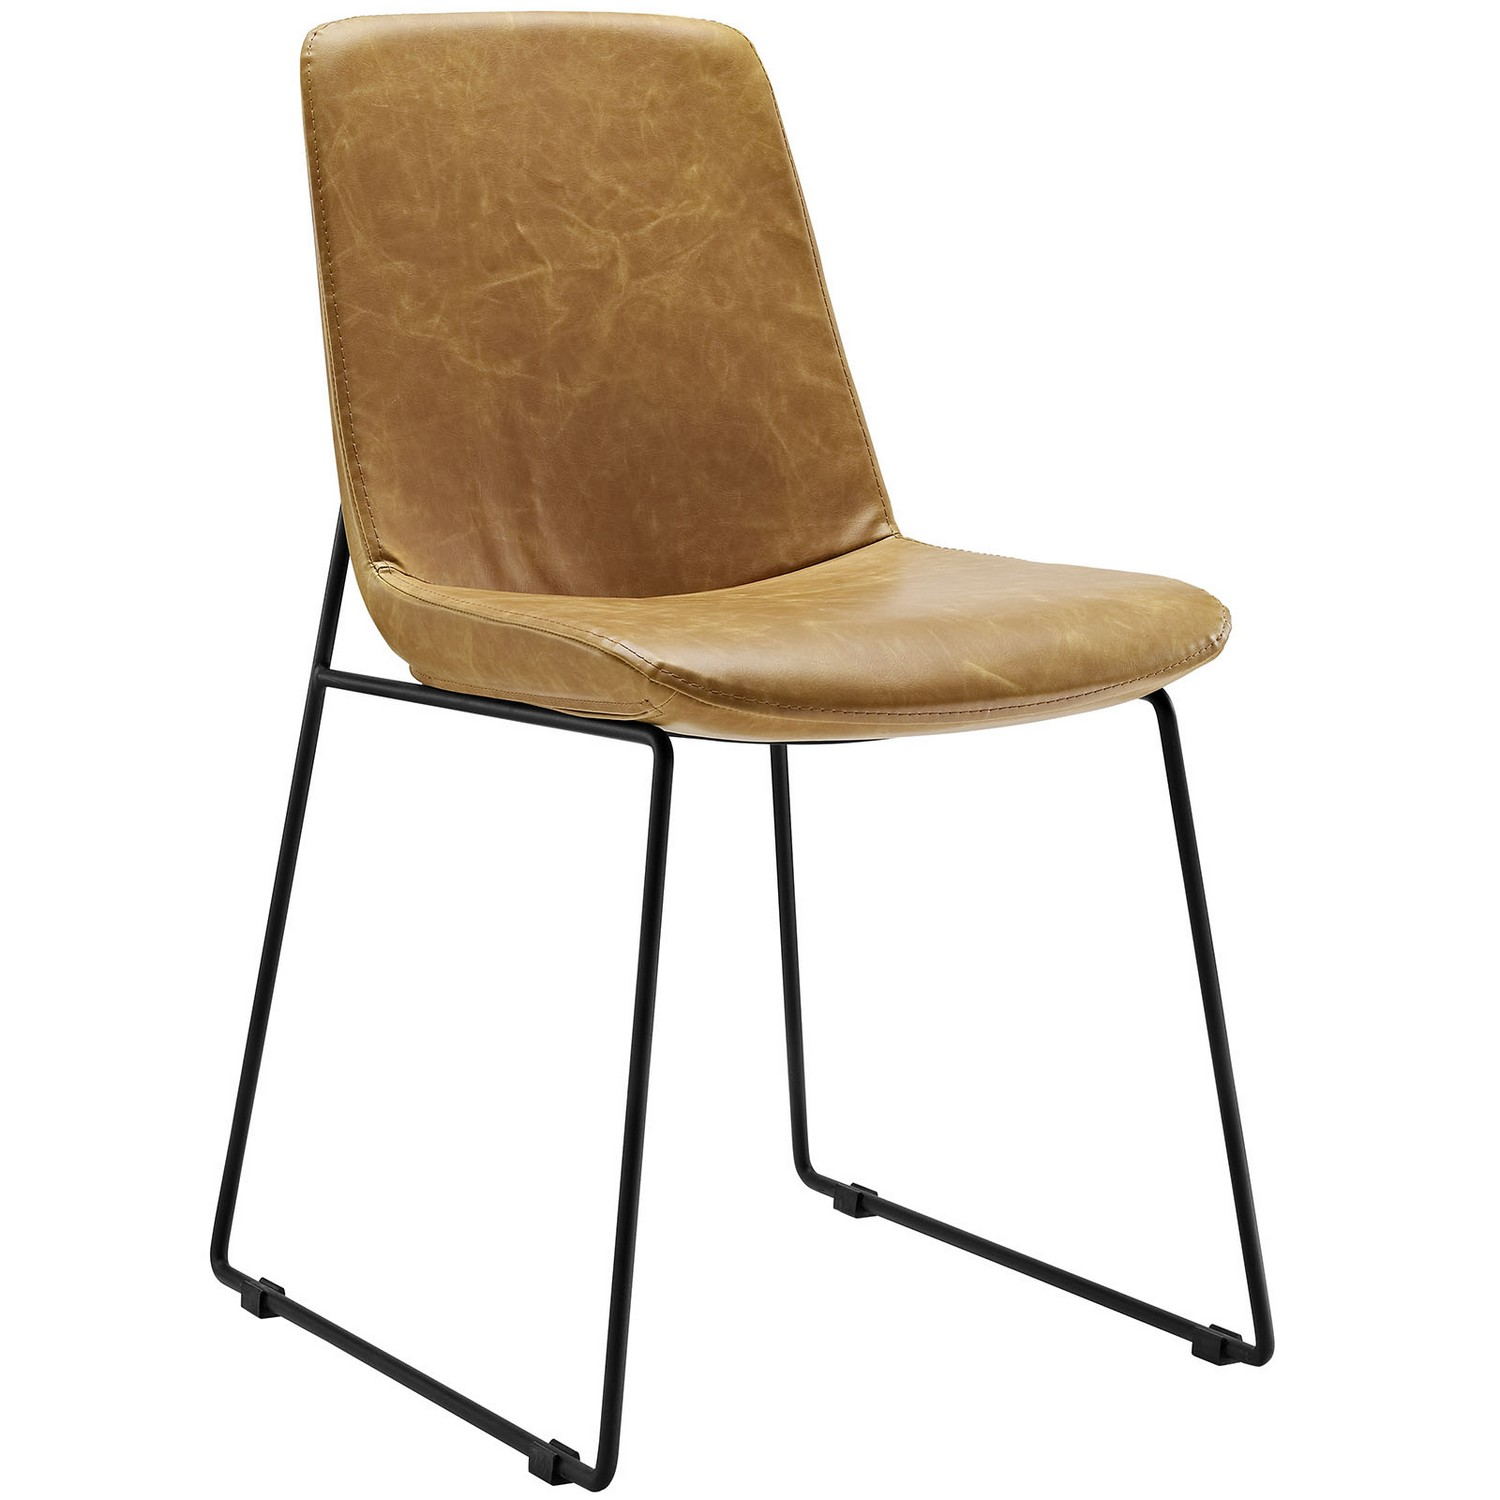 Modway Invite Dining Side Chair - Tan